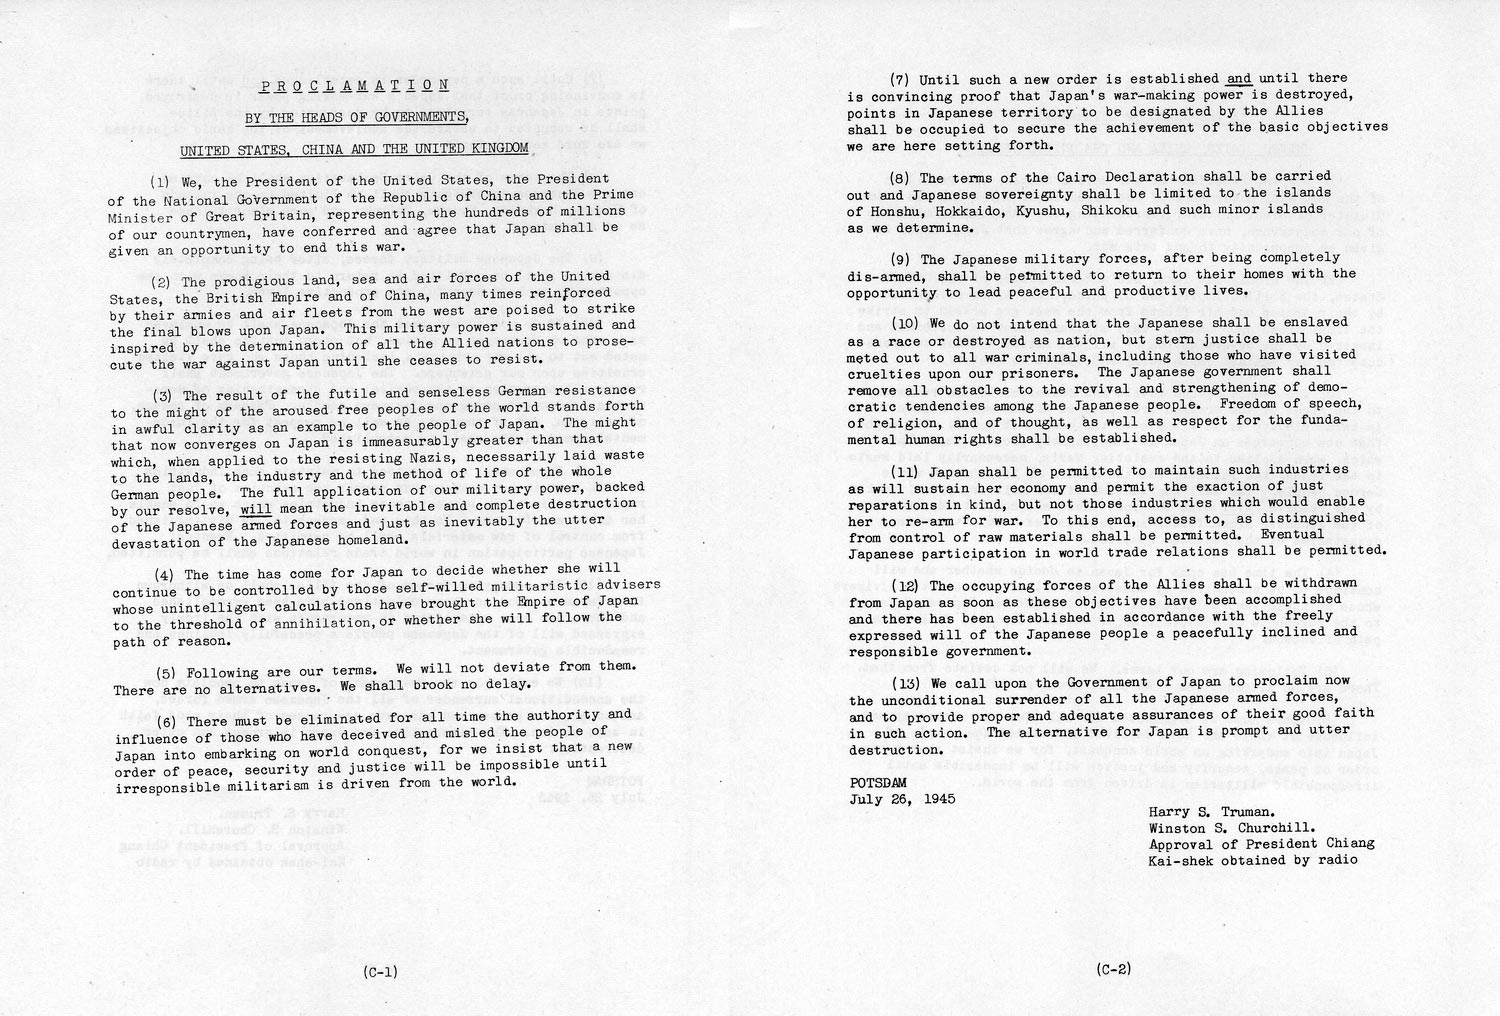 The Potsdam Conference - July 26th 1945 - The full text of the Potsdam Declaration